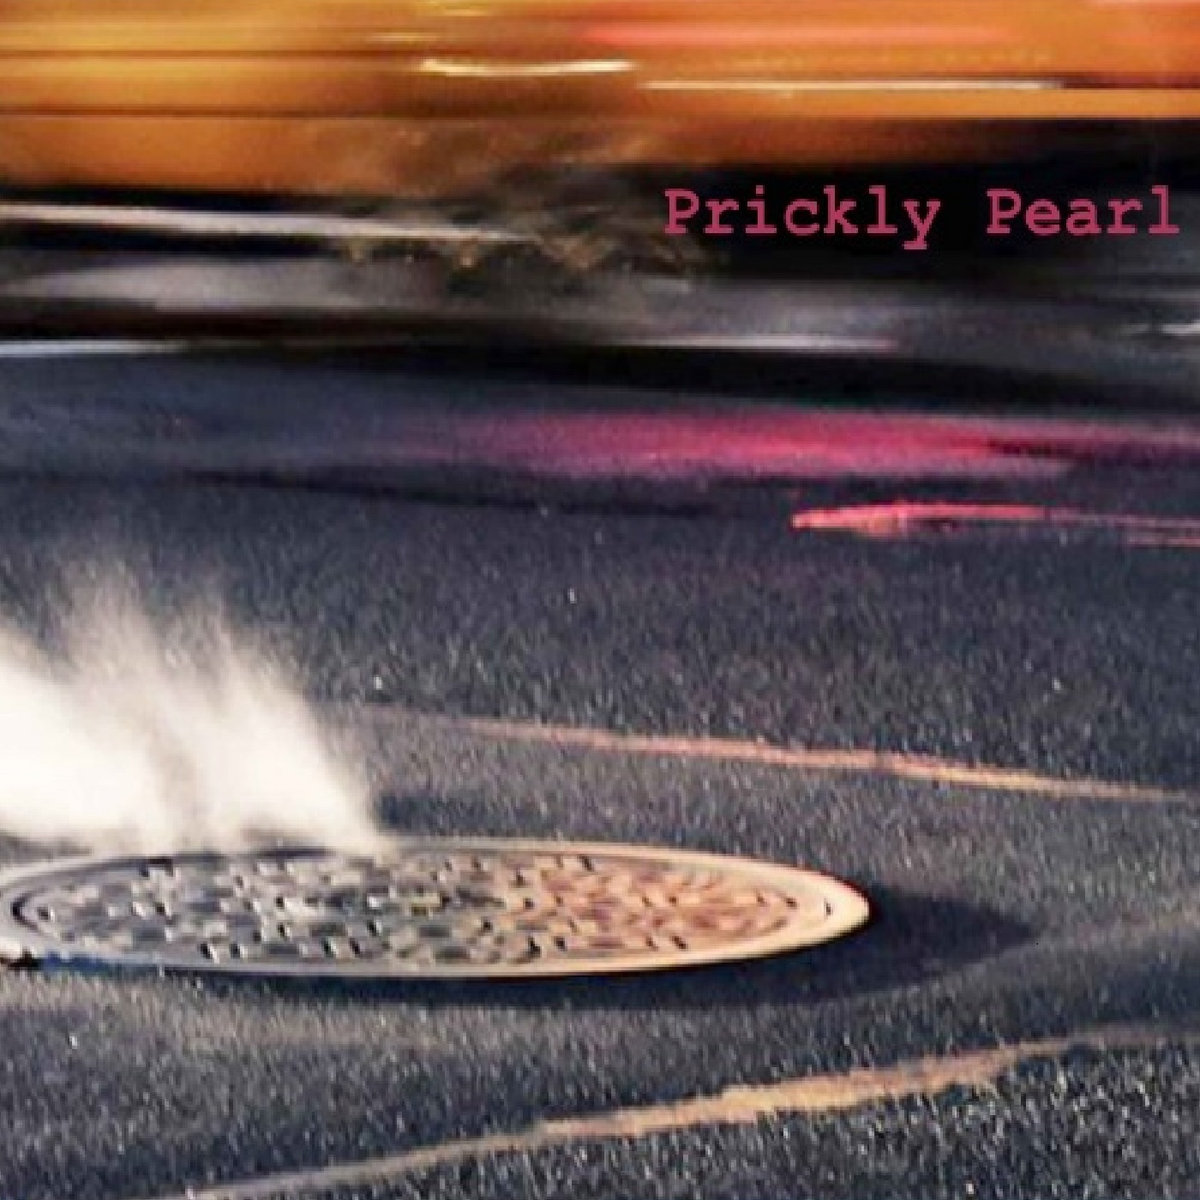 Prickly Pearl